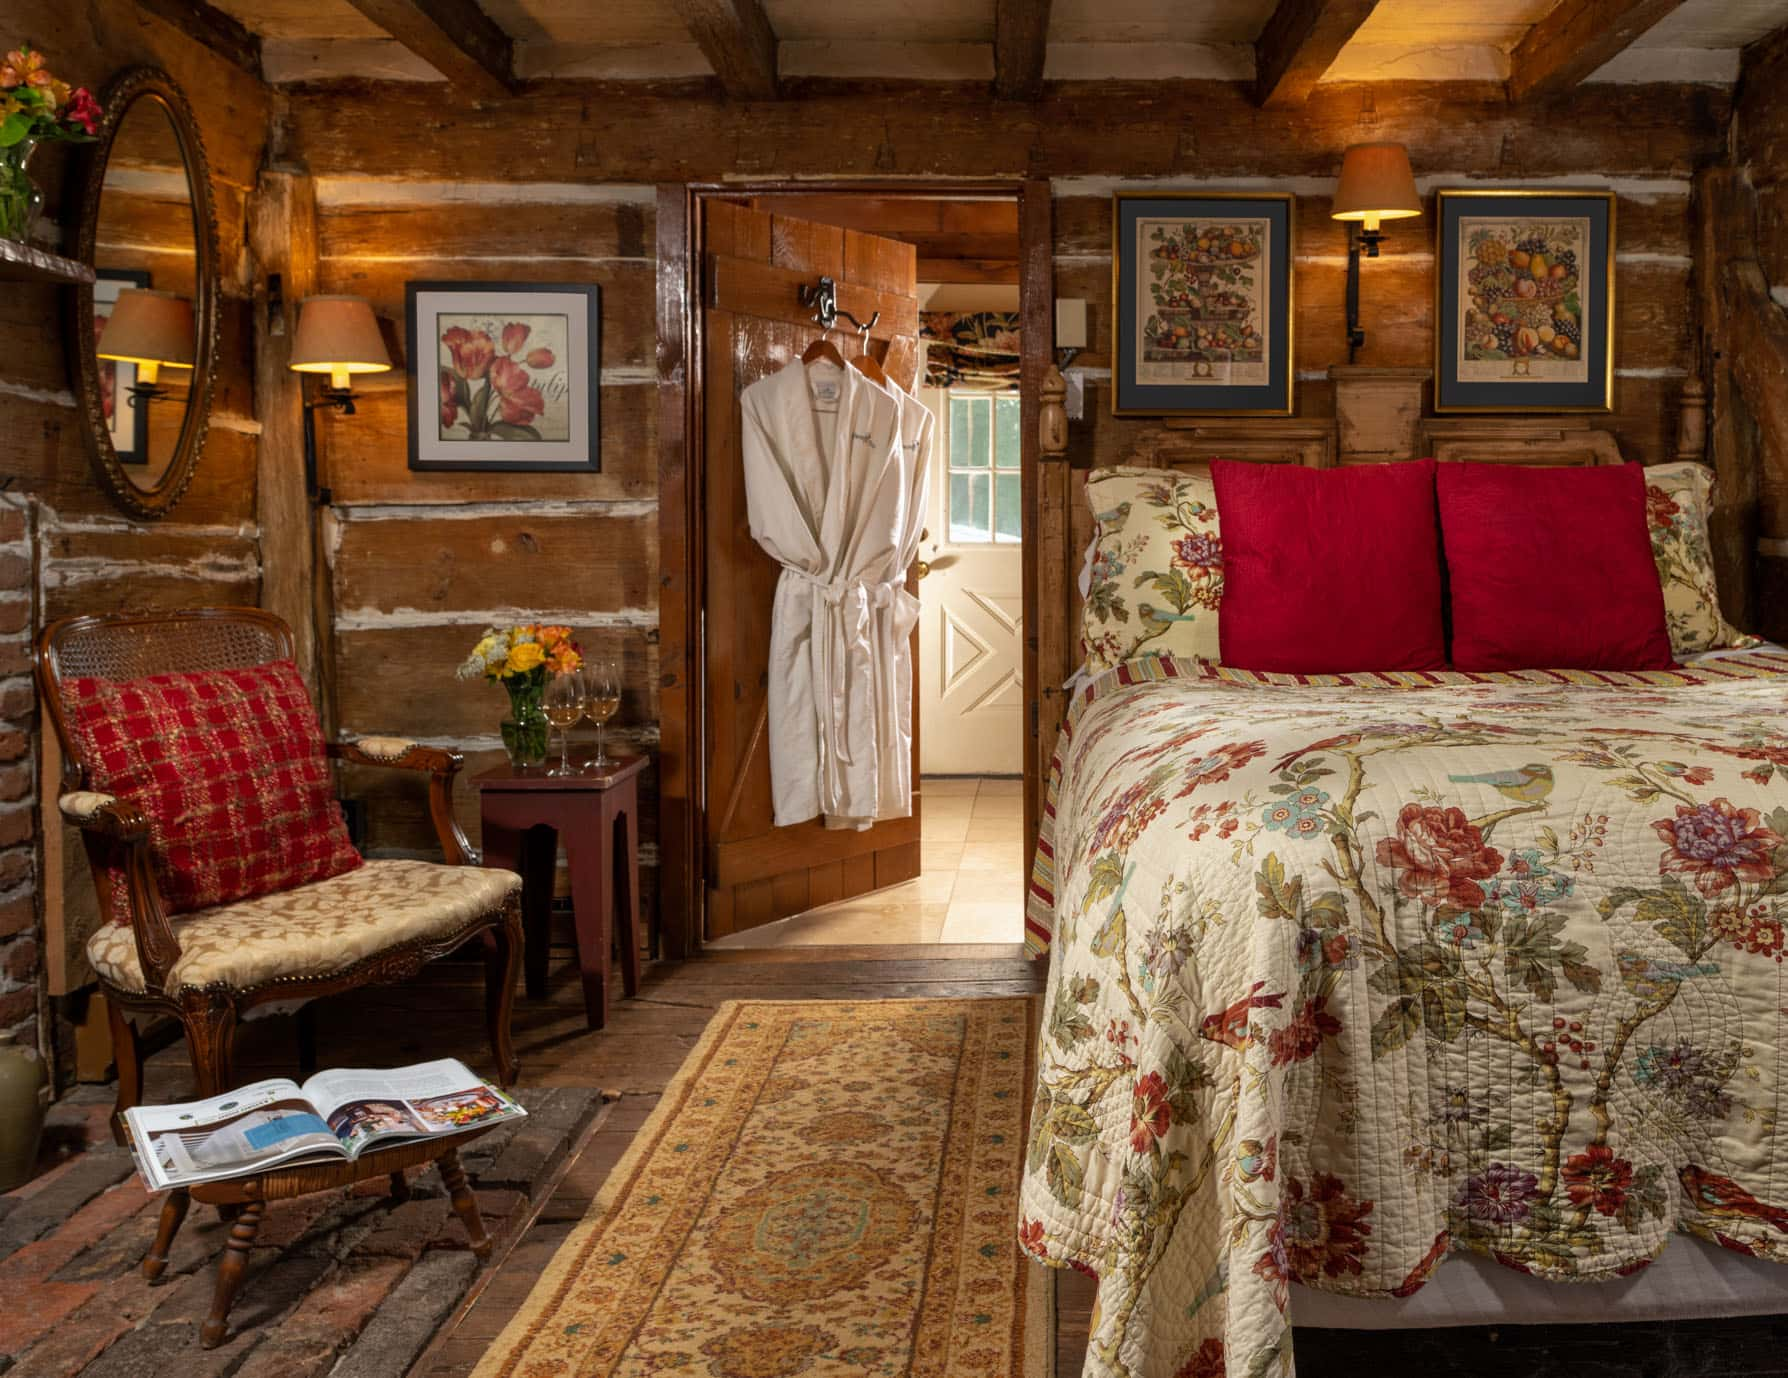 Rustic 17th century cabin with queen bed and seating area